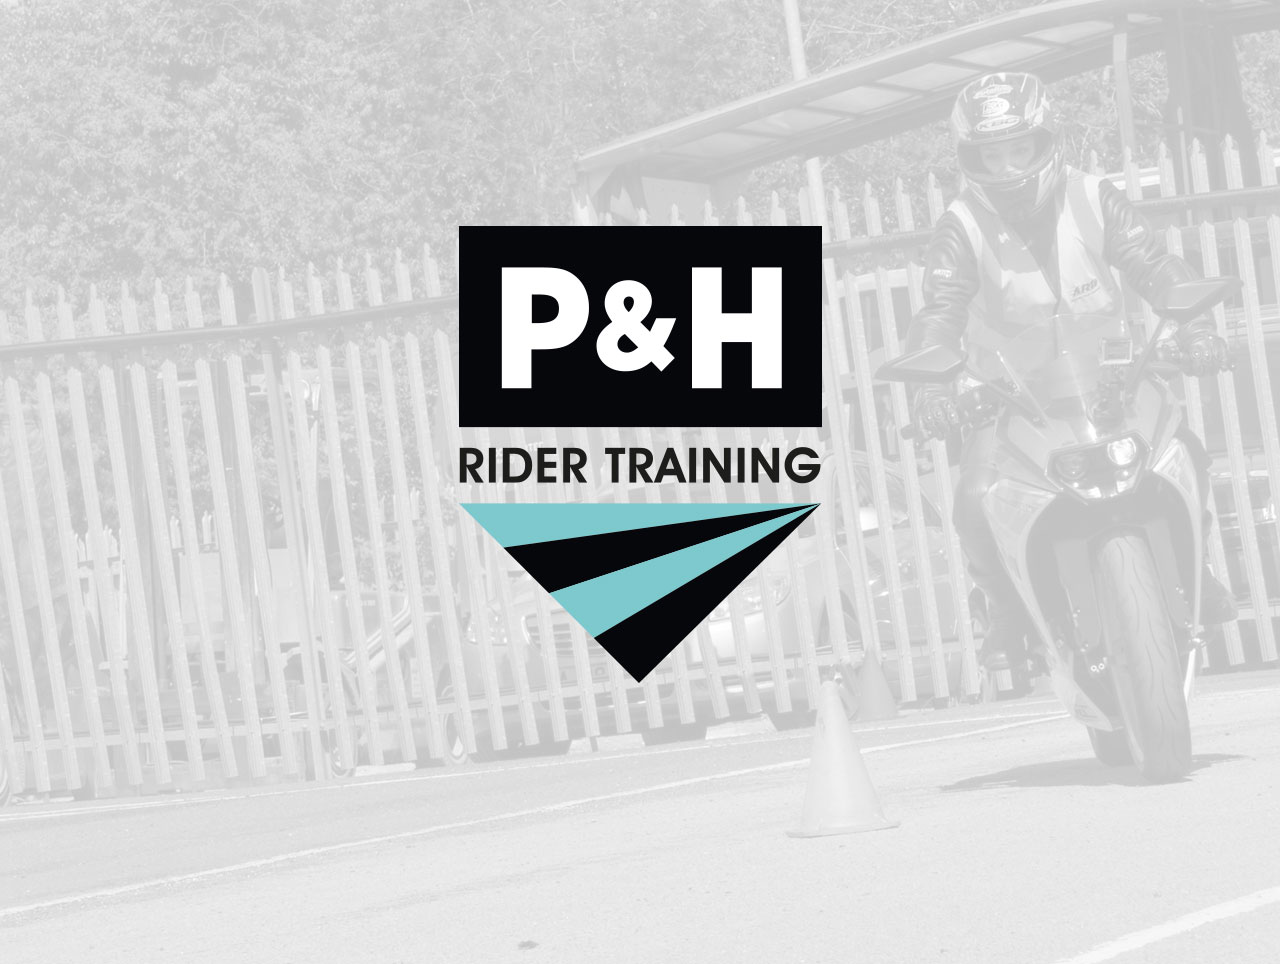 rider training leaflet design